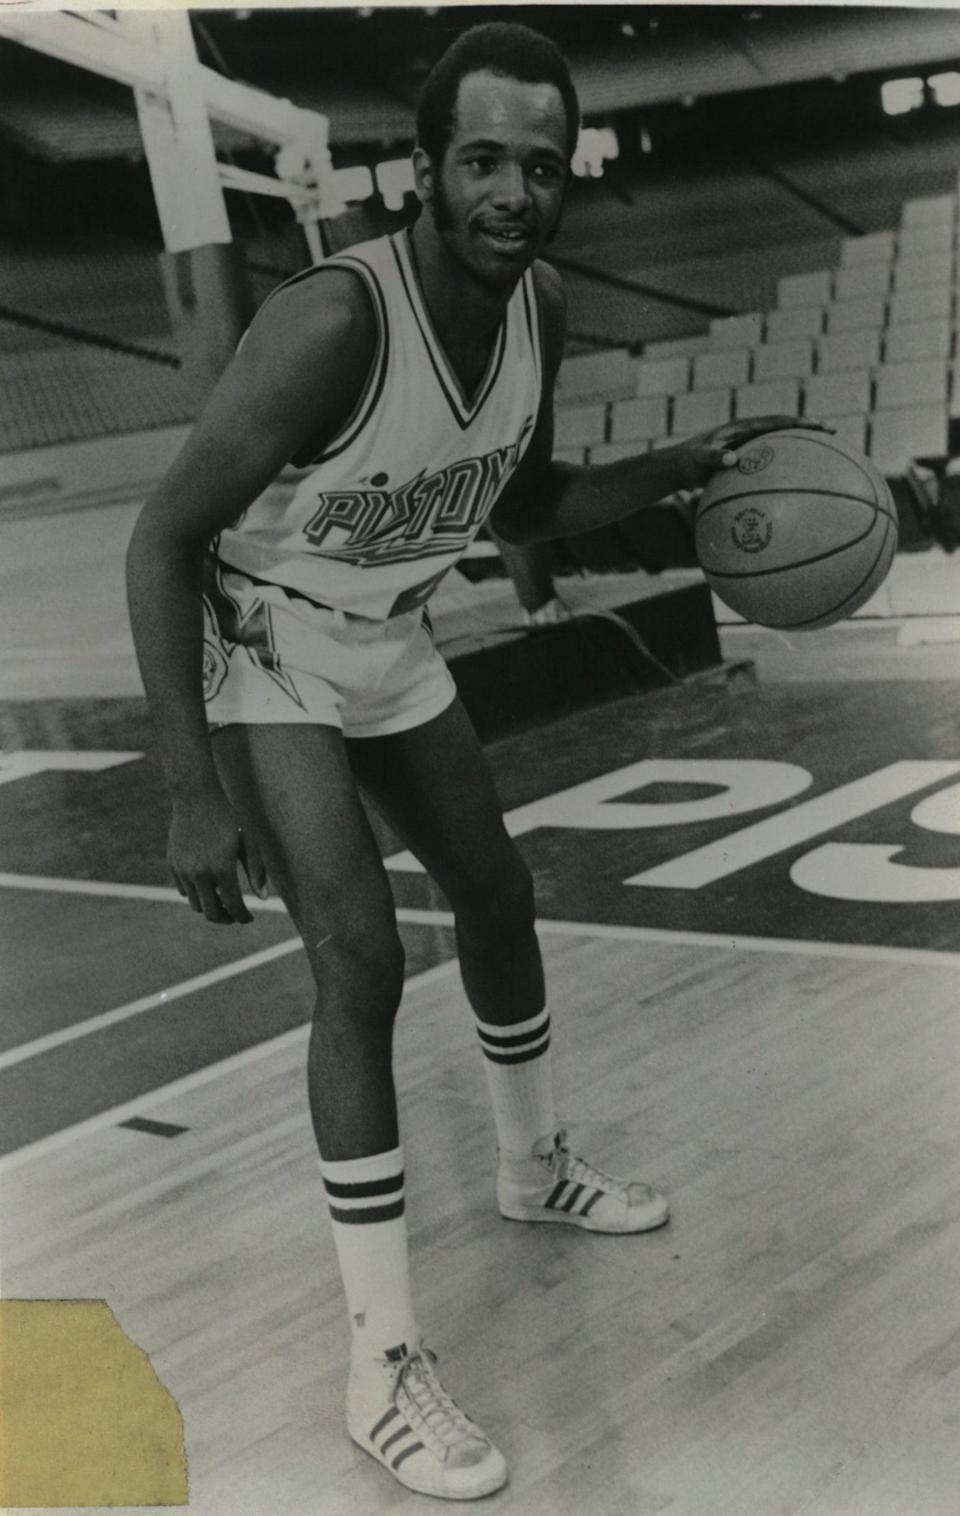 Terry Duerod was a star for the University of Detroit Titans before an NBA career with the Pistons and three other teams.